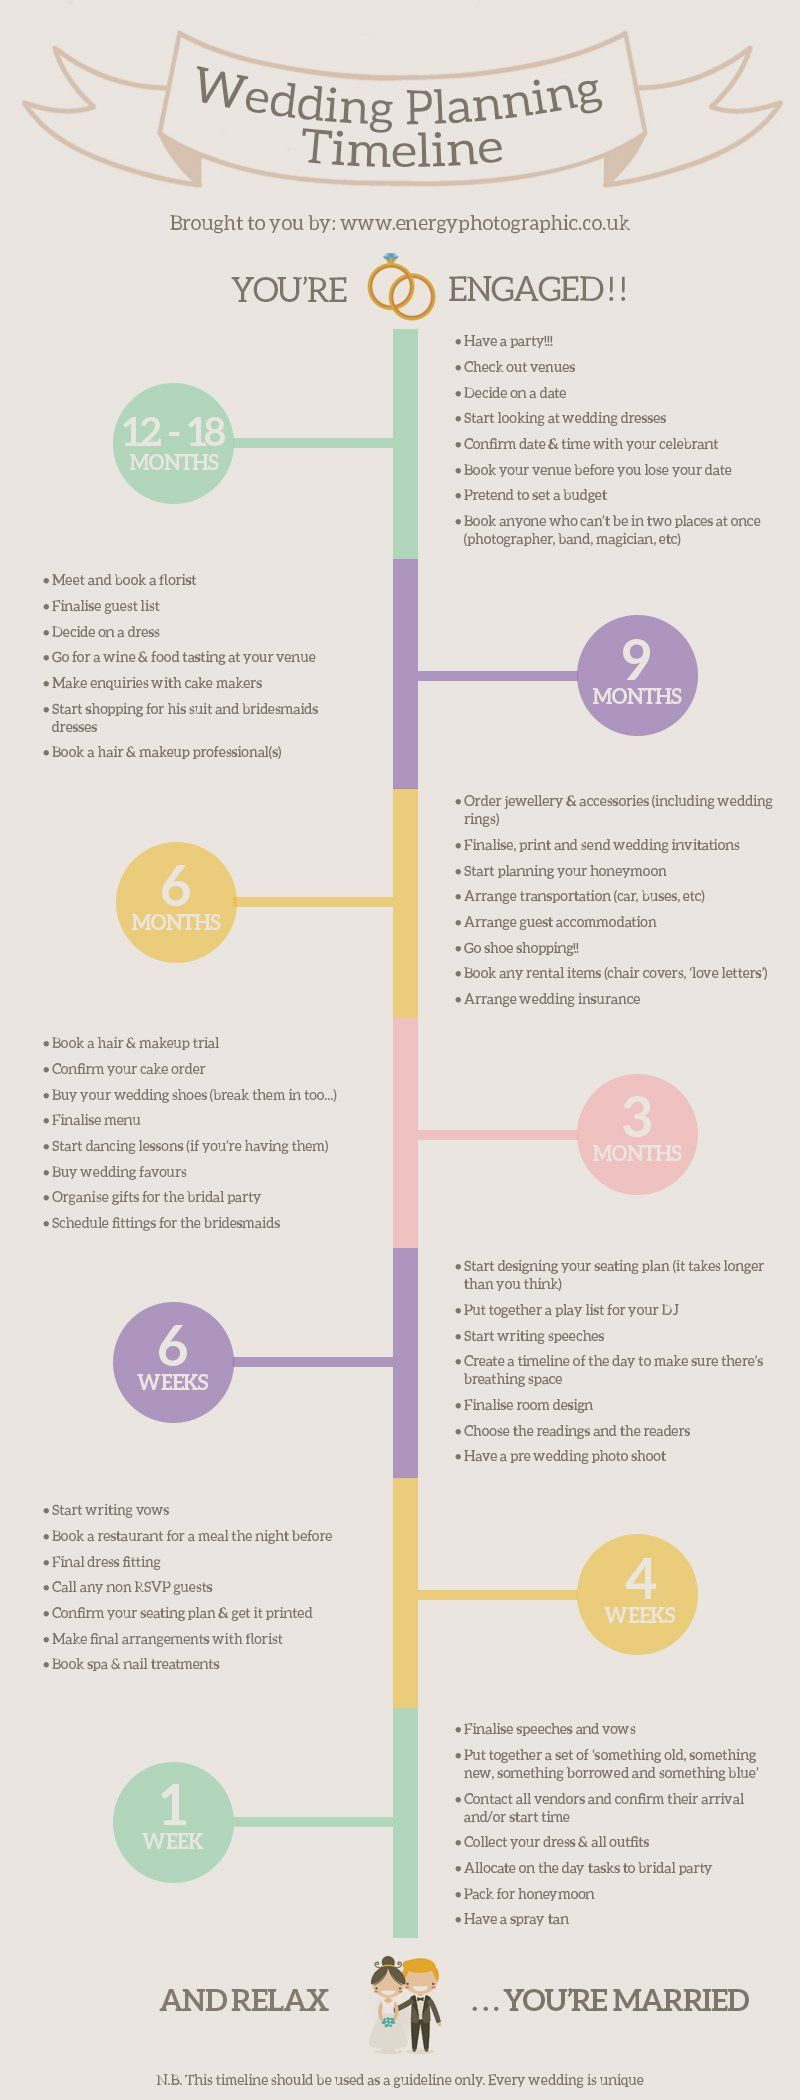 Wedding Timeline Planning Your Day This Useful Will Help You Know